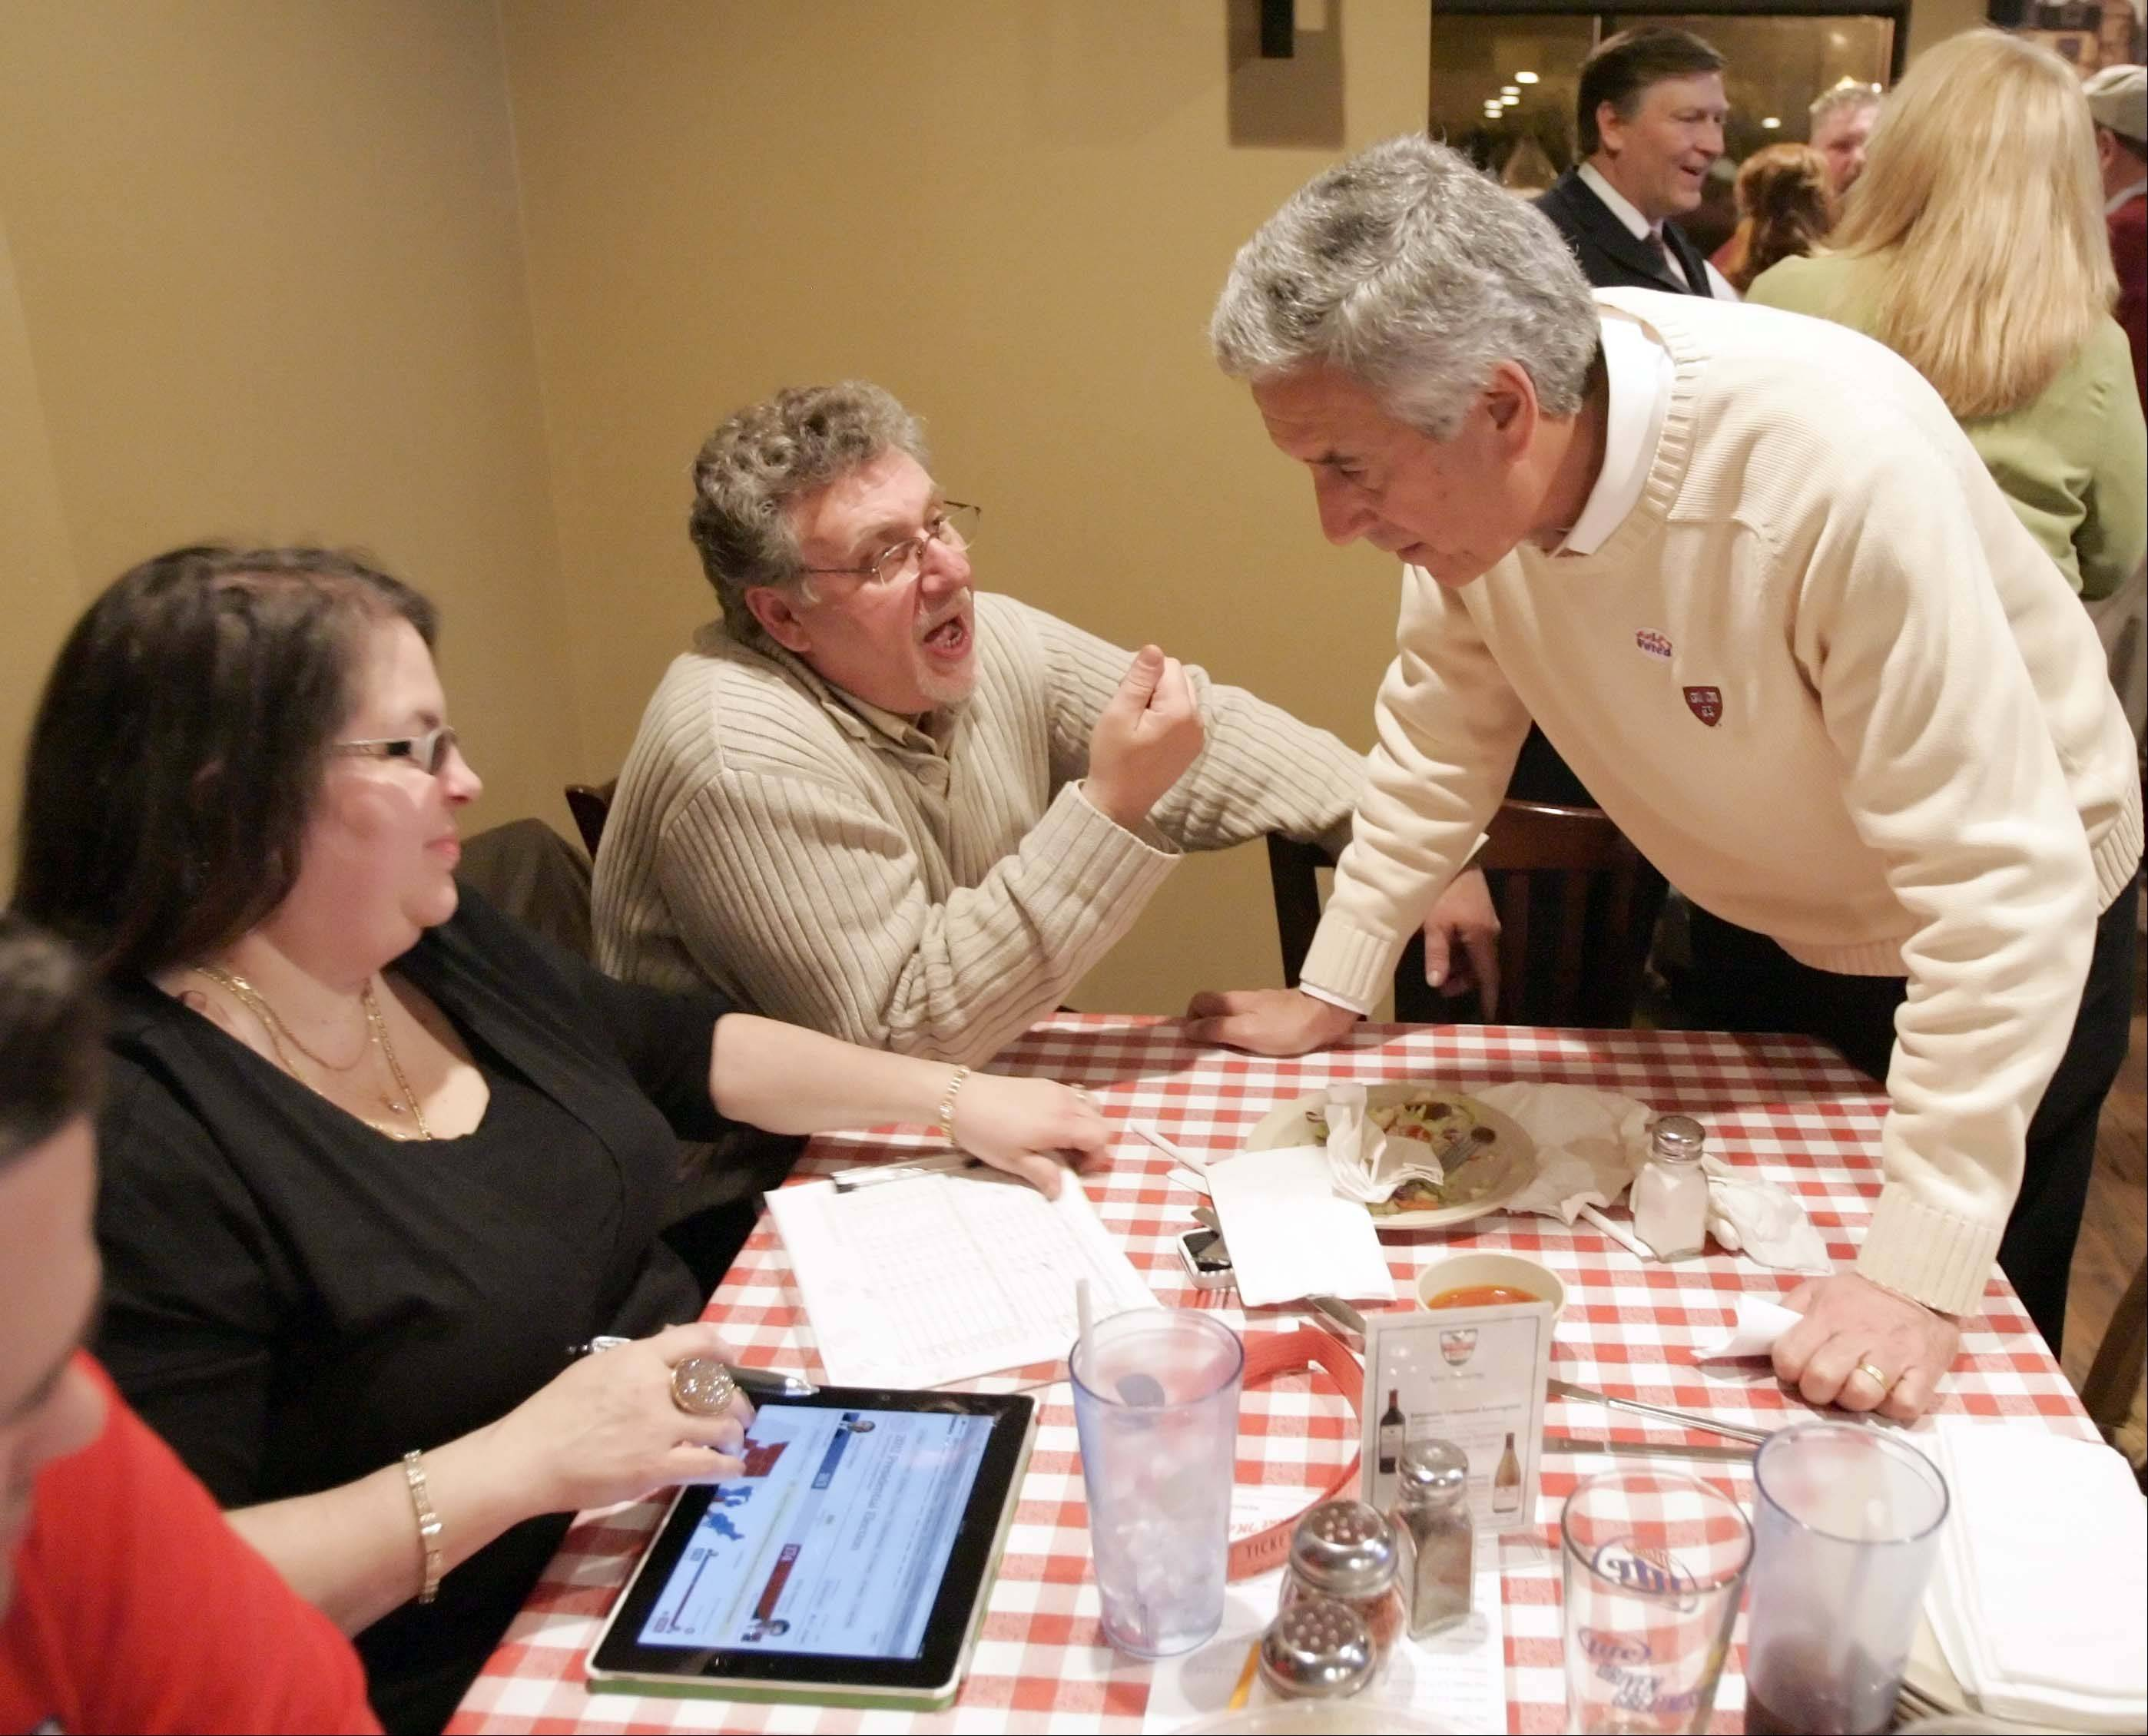 Chris Lauzen looks over results Tuesday with Sal and Christina Abbate of North Aurora at Aurelio's Pizza in Geneva. Lauzen defeated Sue Klinkhamer for the Kane County Board chairman's seat.